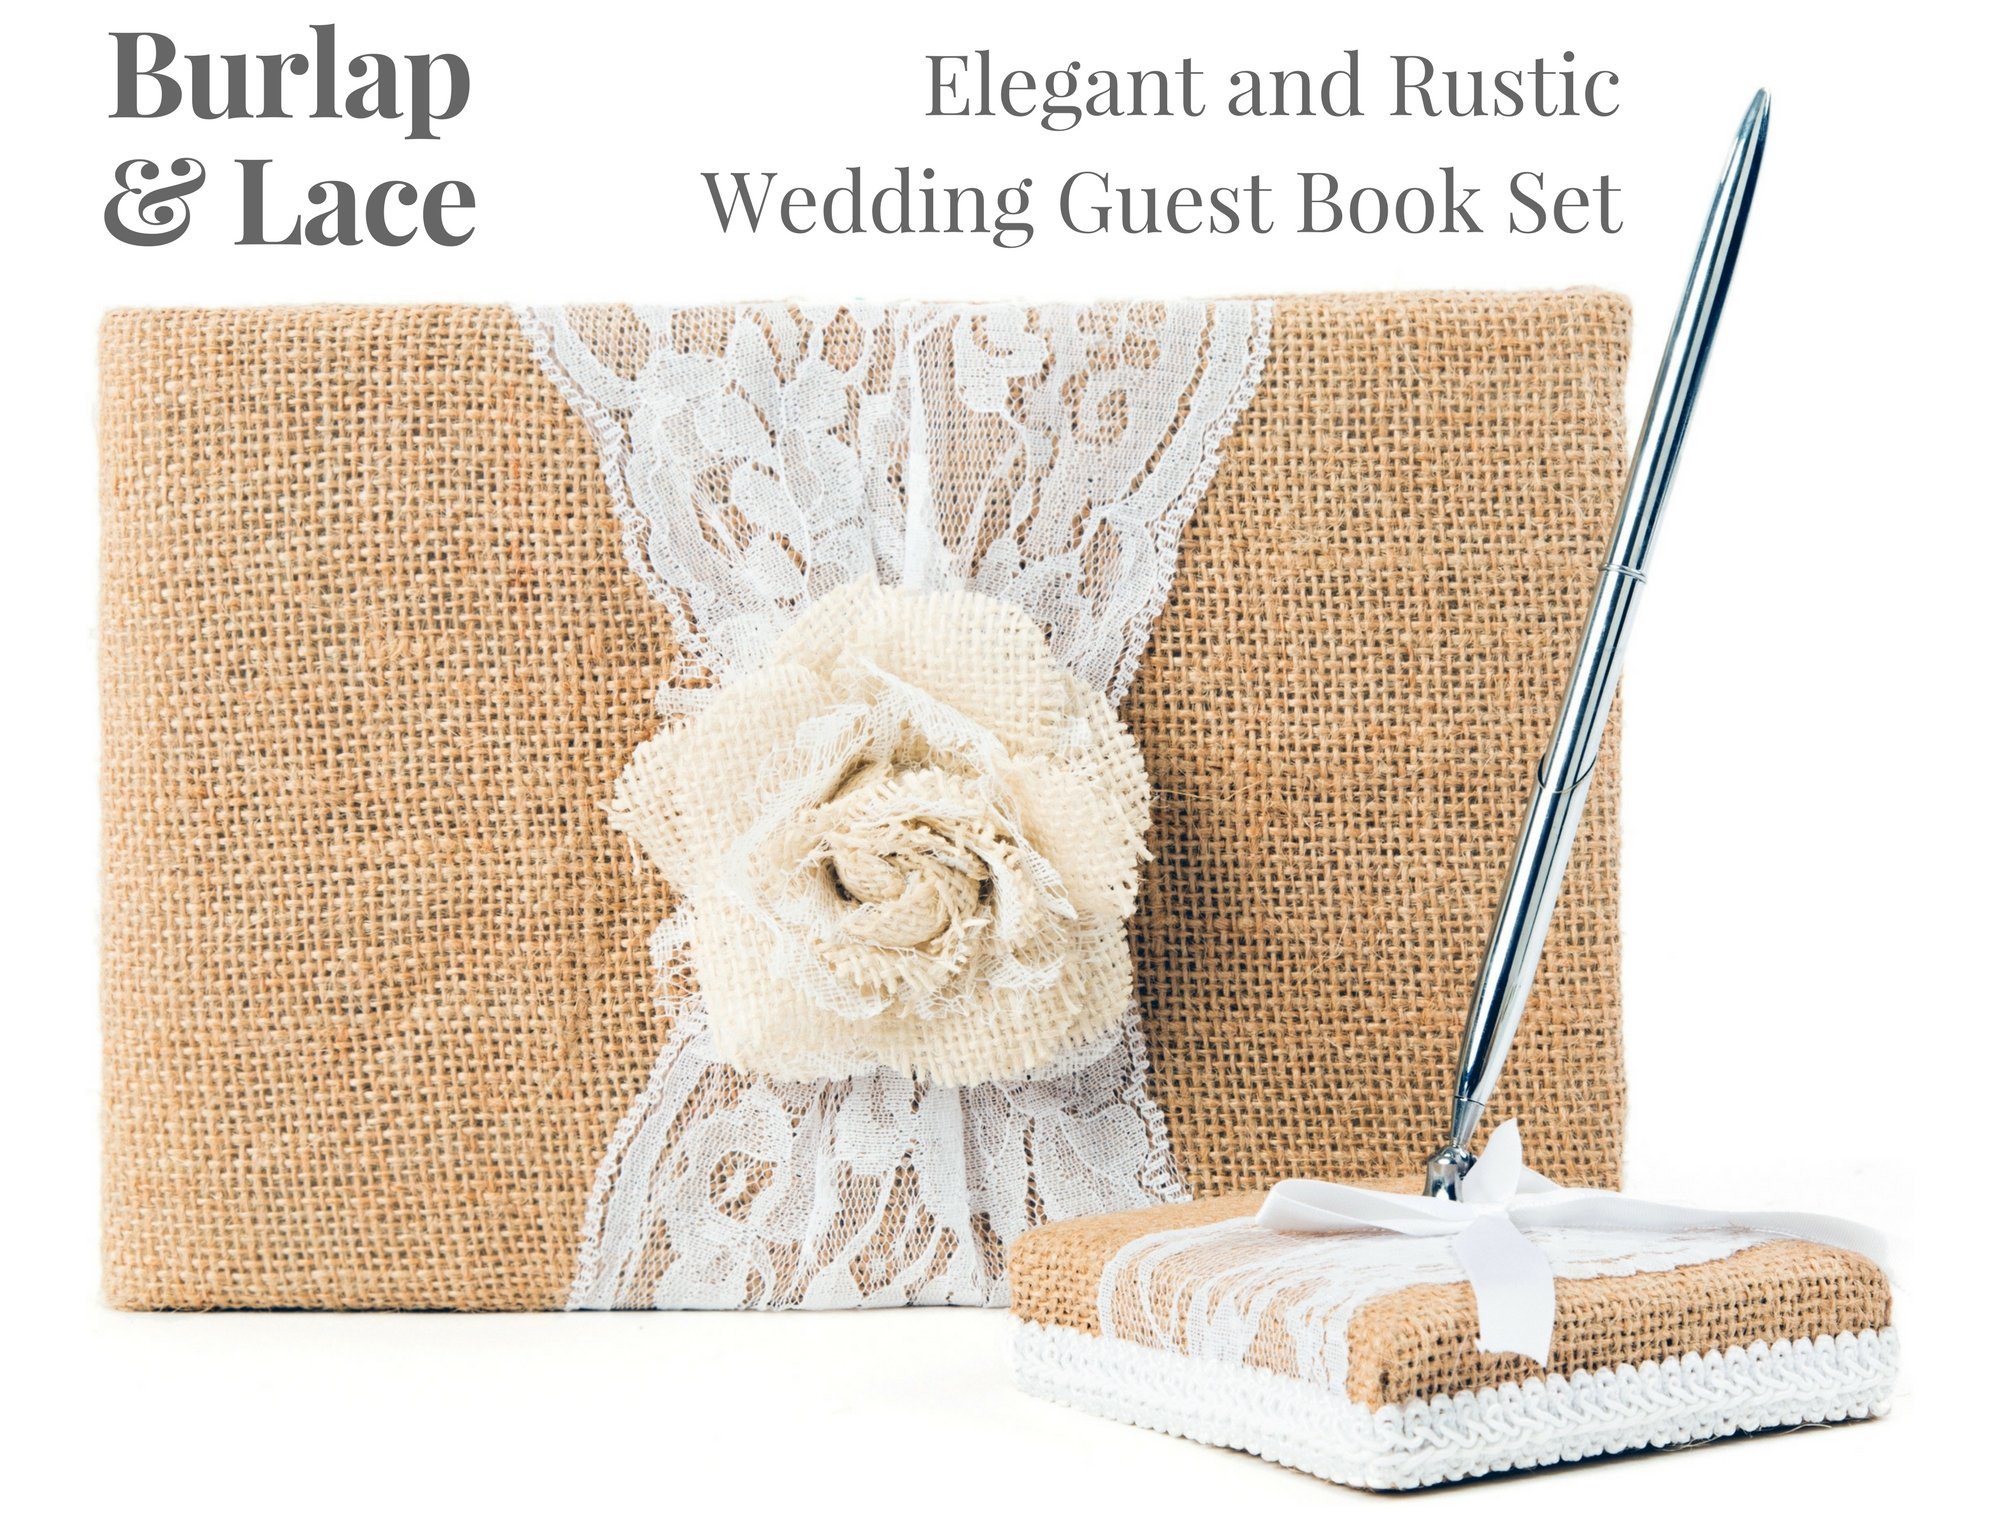 Rustic Wedding Guest Book Made of Burlap and Lace - Includes Burlap Pen Holder and Silver Pen - 120 Lined Pages for Guest Thoughts - Comes in Gift Box (White Rose)